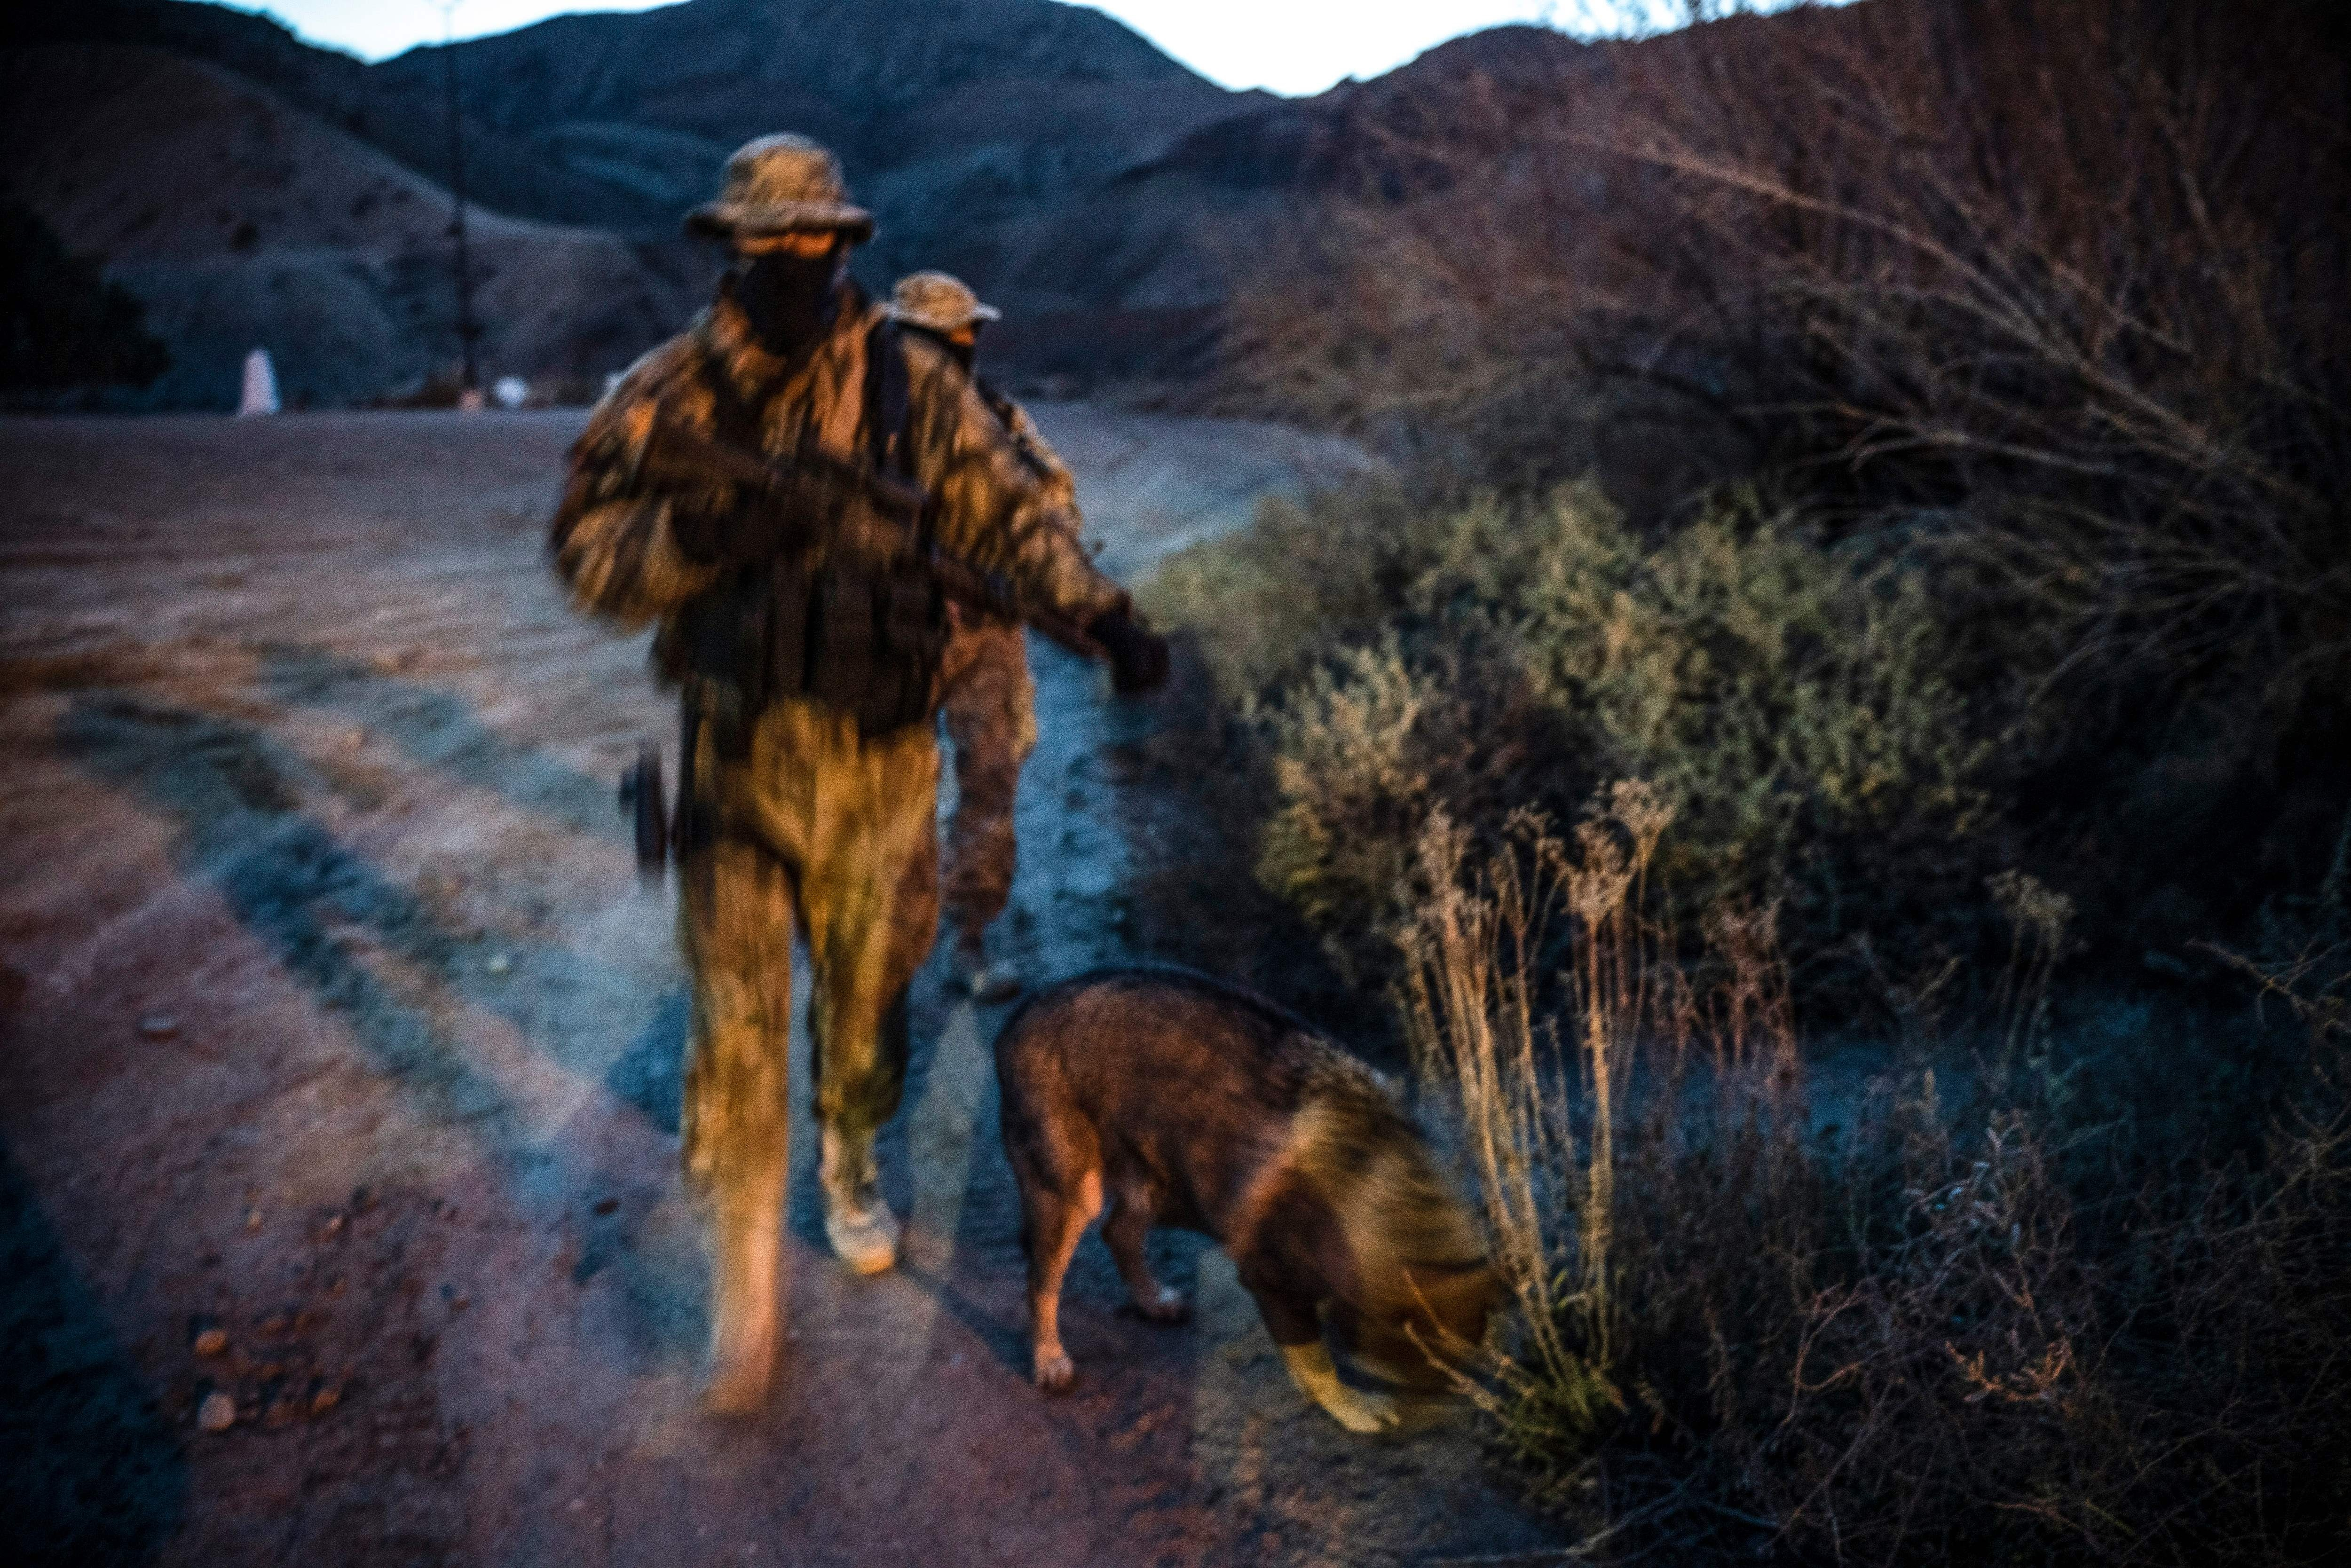 "Members of the Constitutional Patriots New Mexico Border Ops Team militia, Viper and Stinger who go by aliases to protect their identity, patrol the US-Mexico border in Sunland Park, New Mexico on March 20, 2019. - The militia members say they will patrol the US-Mexico border near Mt. Christo Rey, ""Until the wall is built."" In recent months, thousands of Central Americans have arrived in Mexico in several caravans in the hope of finding a better life in the United States. US President Donald Trump has branded such migrants a threat to national security, demanding billions of dollars from Congress to build a wall on the southern US border. (Photo by Paul Ratje / AFP)(Photo credit should read PAUL RATJE/AFP/Getty Images)"